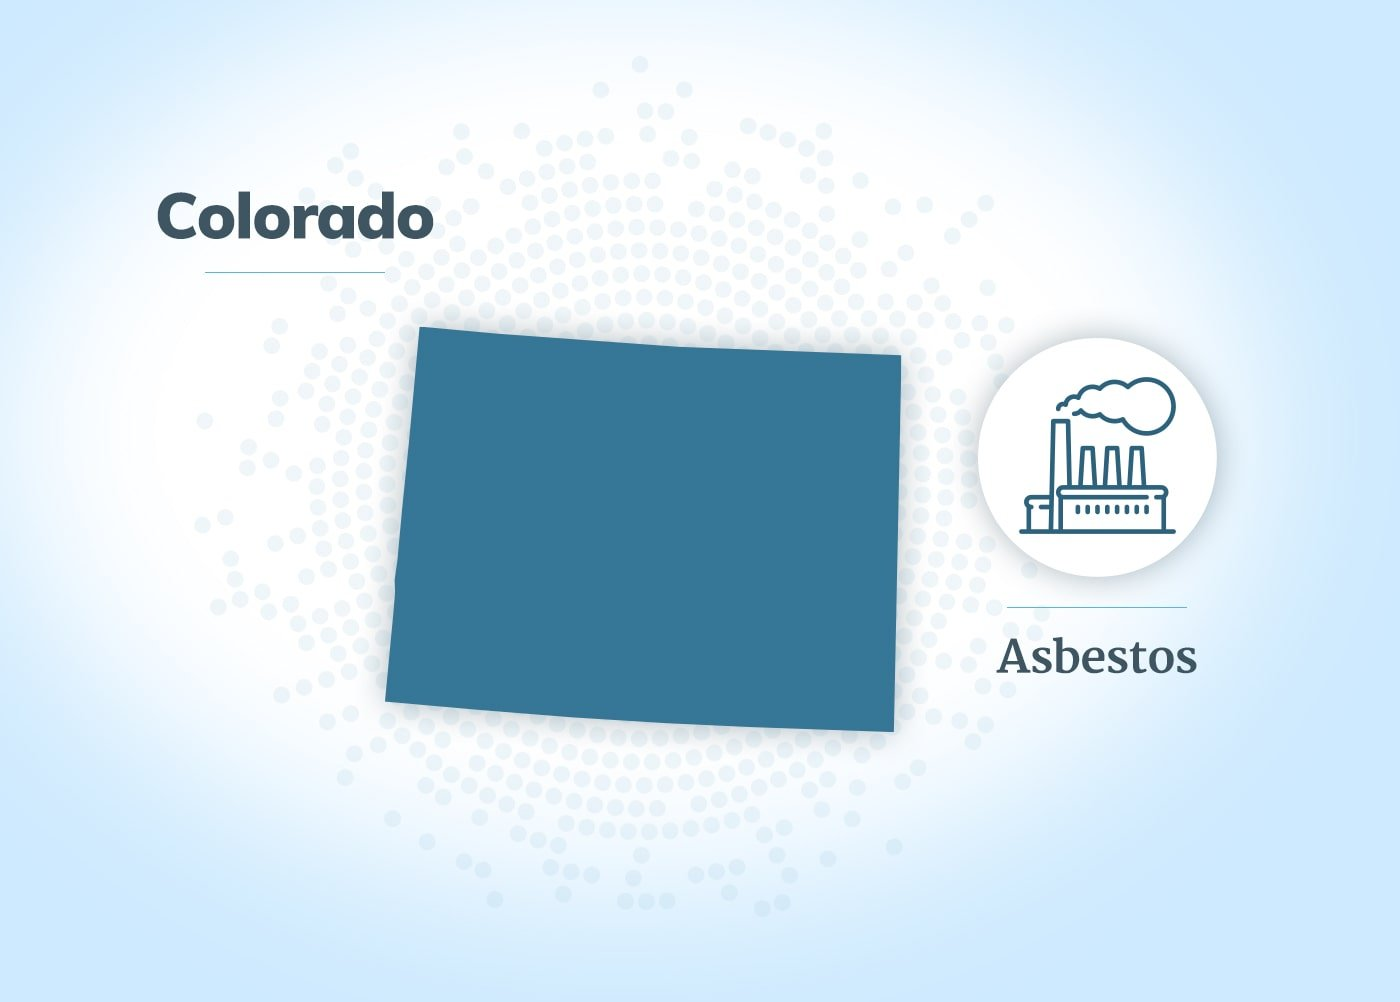 Asbestos exposure in Colorado